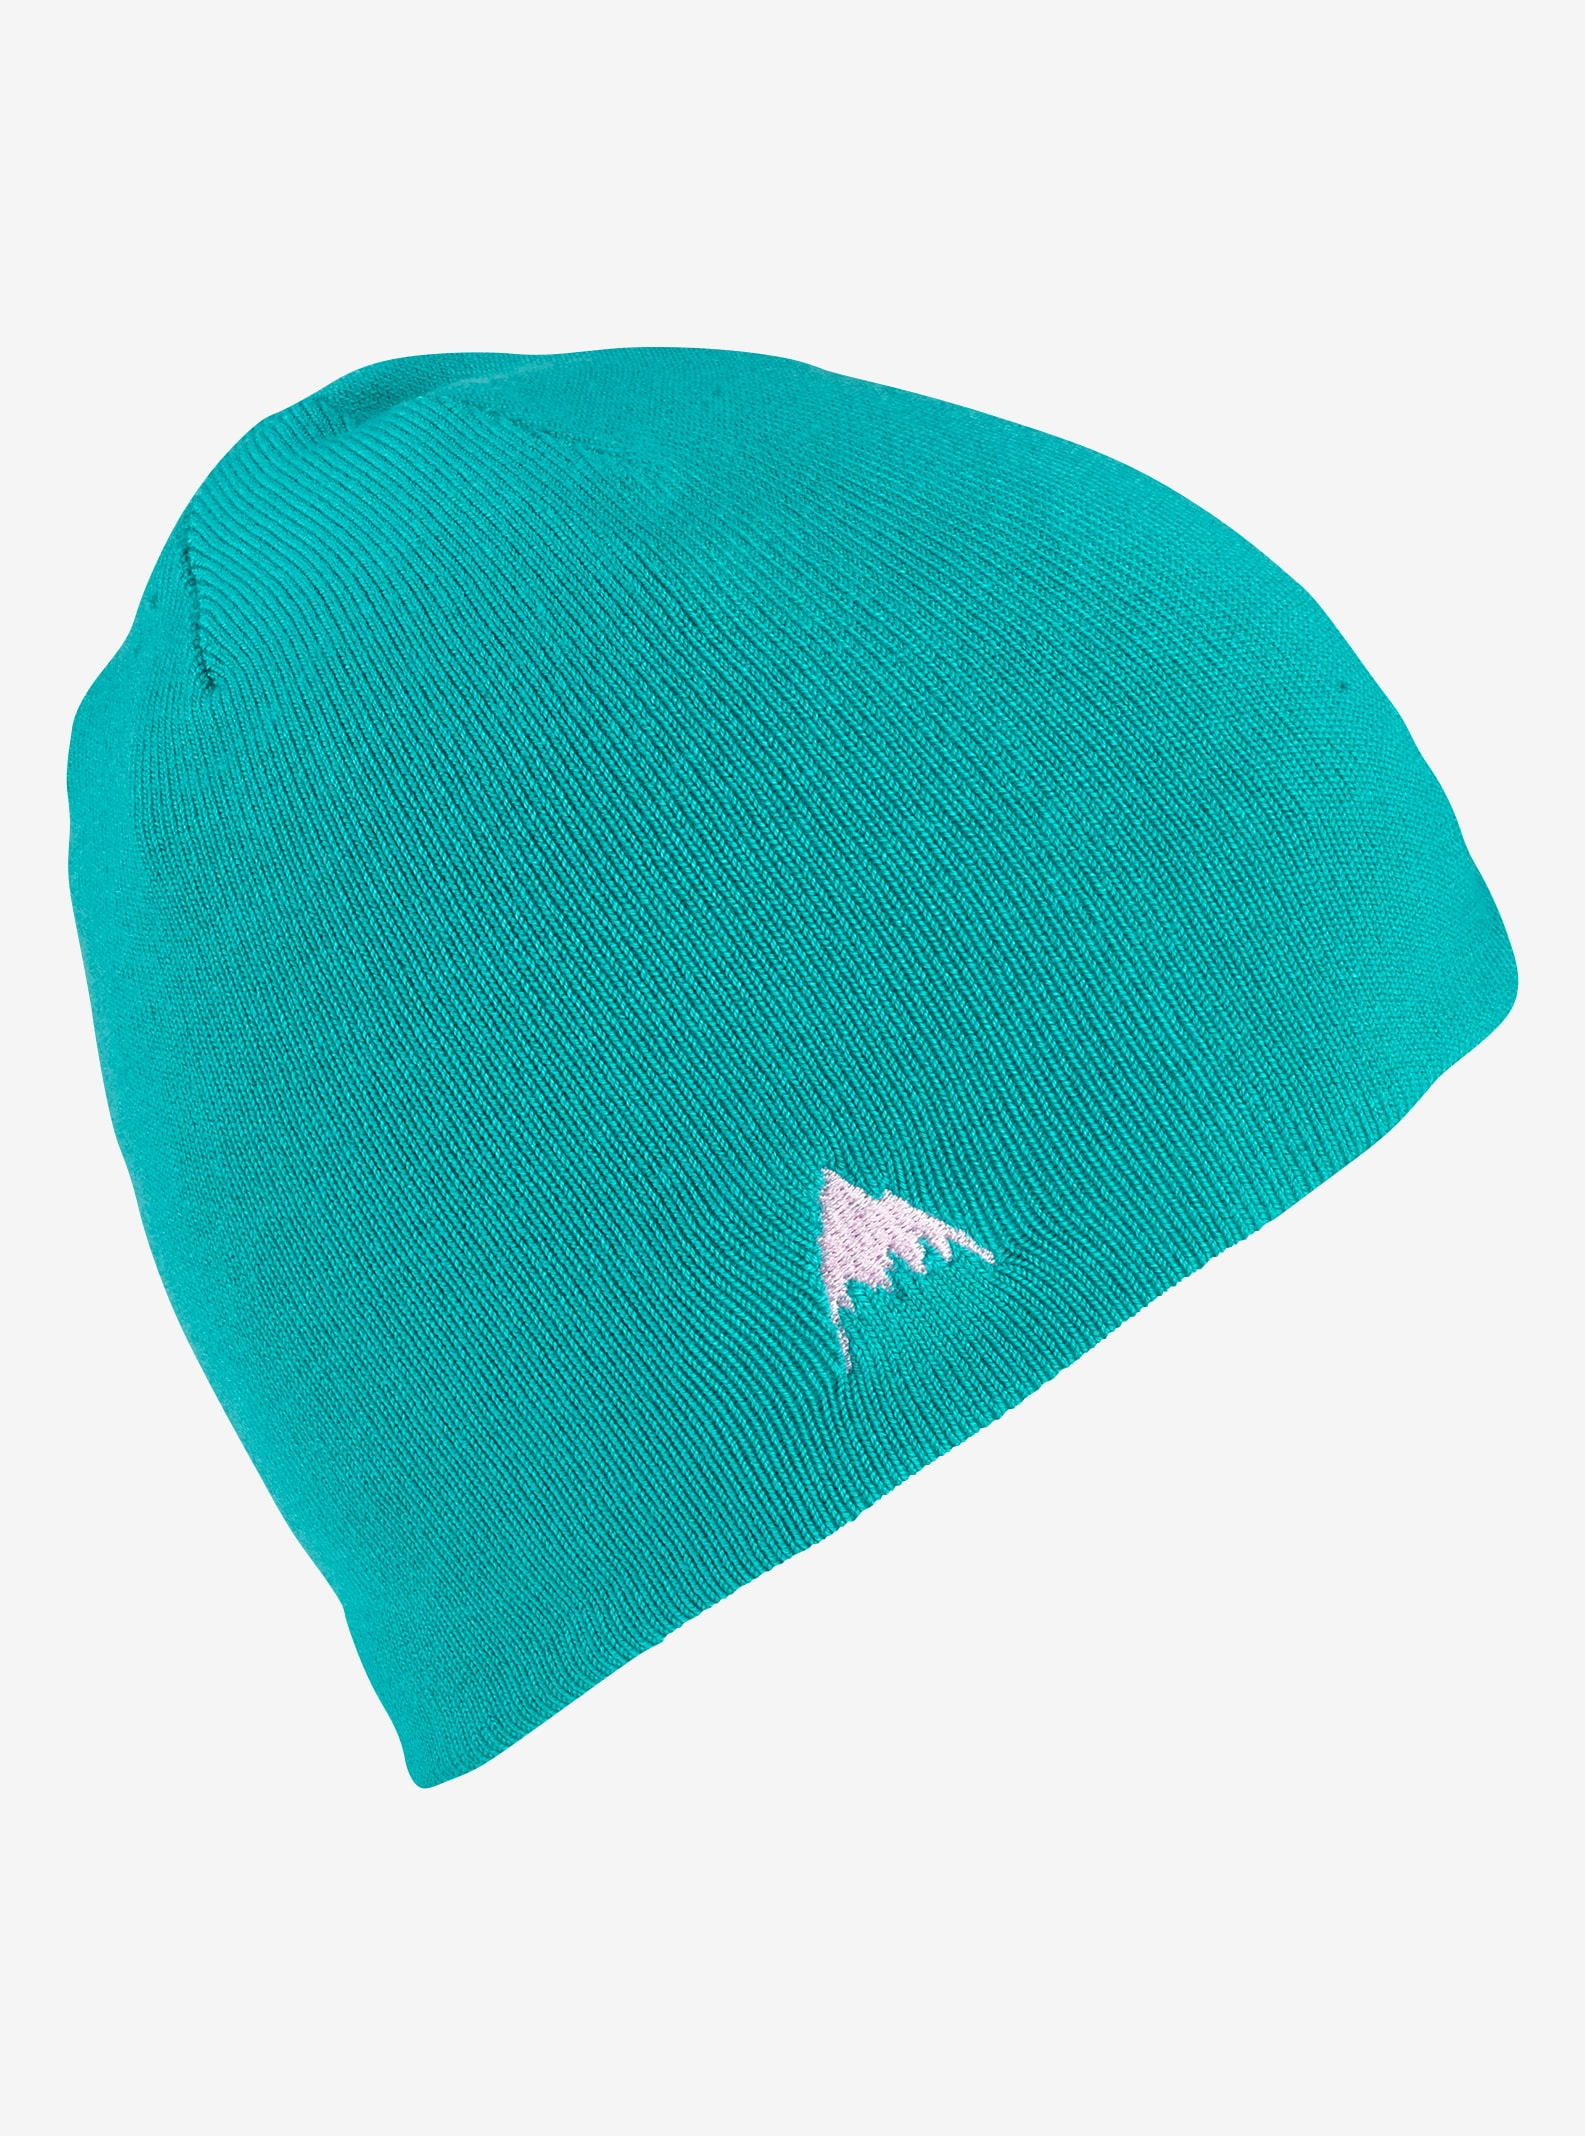 Girls' Burton Belle Reversible Beanie shown in Everglade / Cosmos